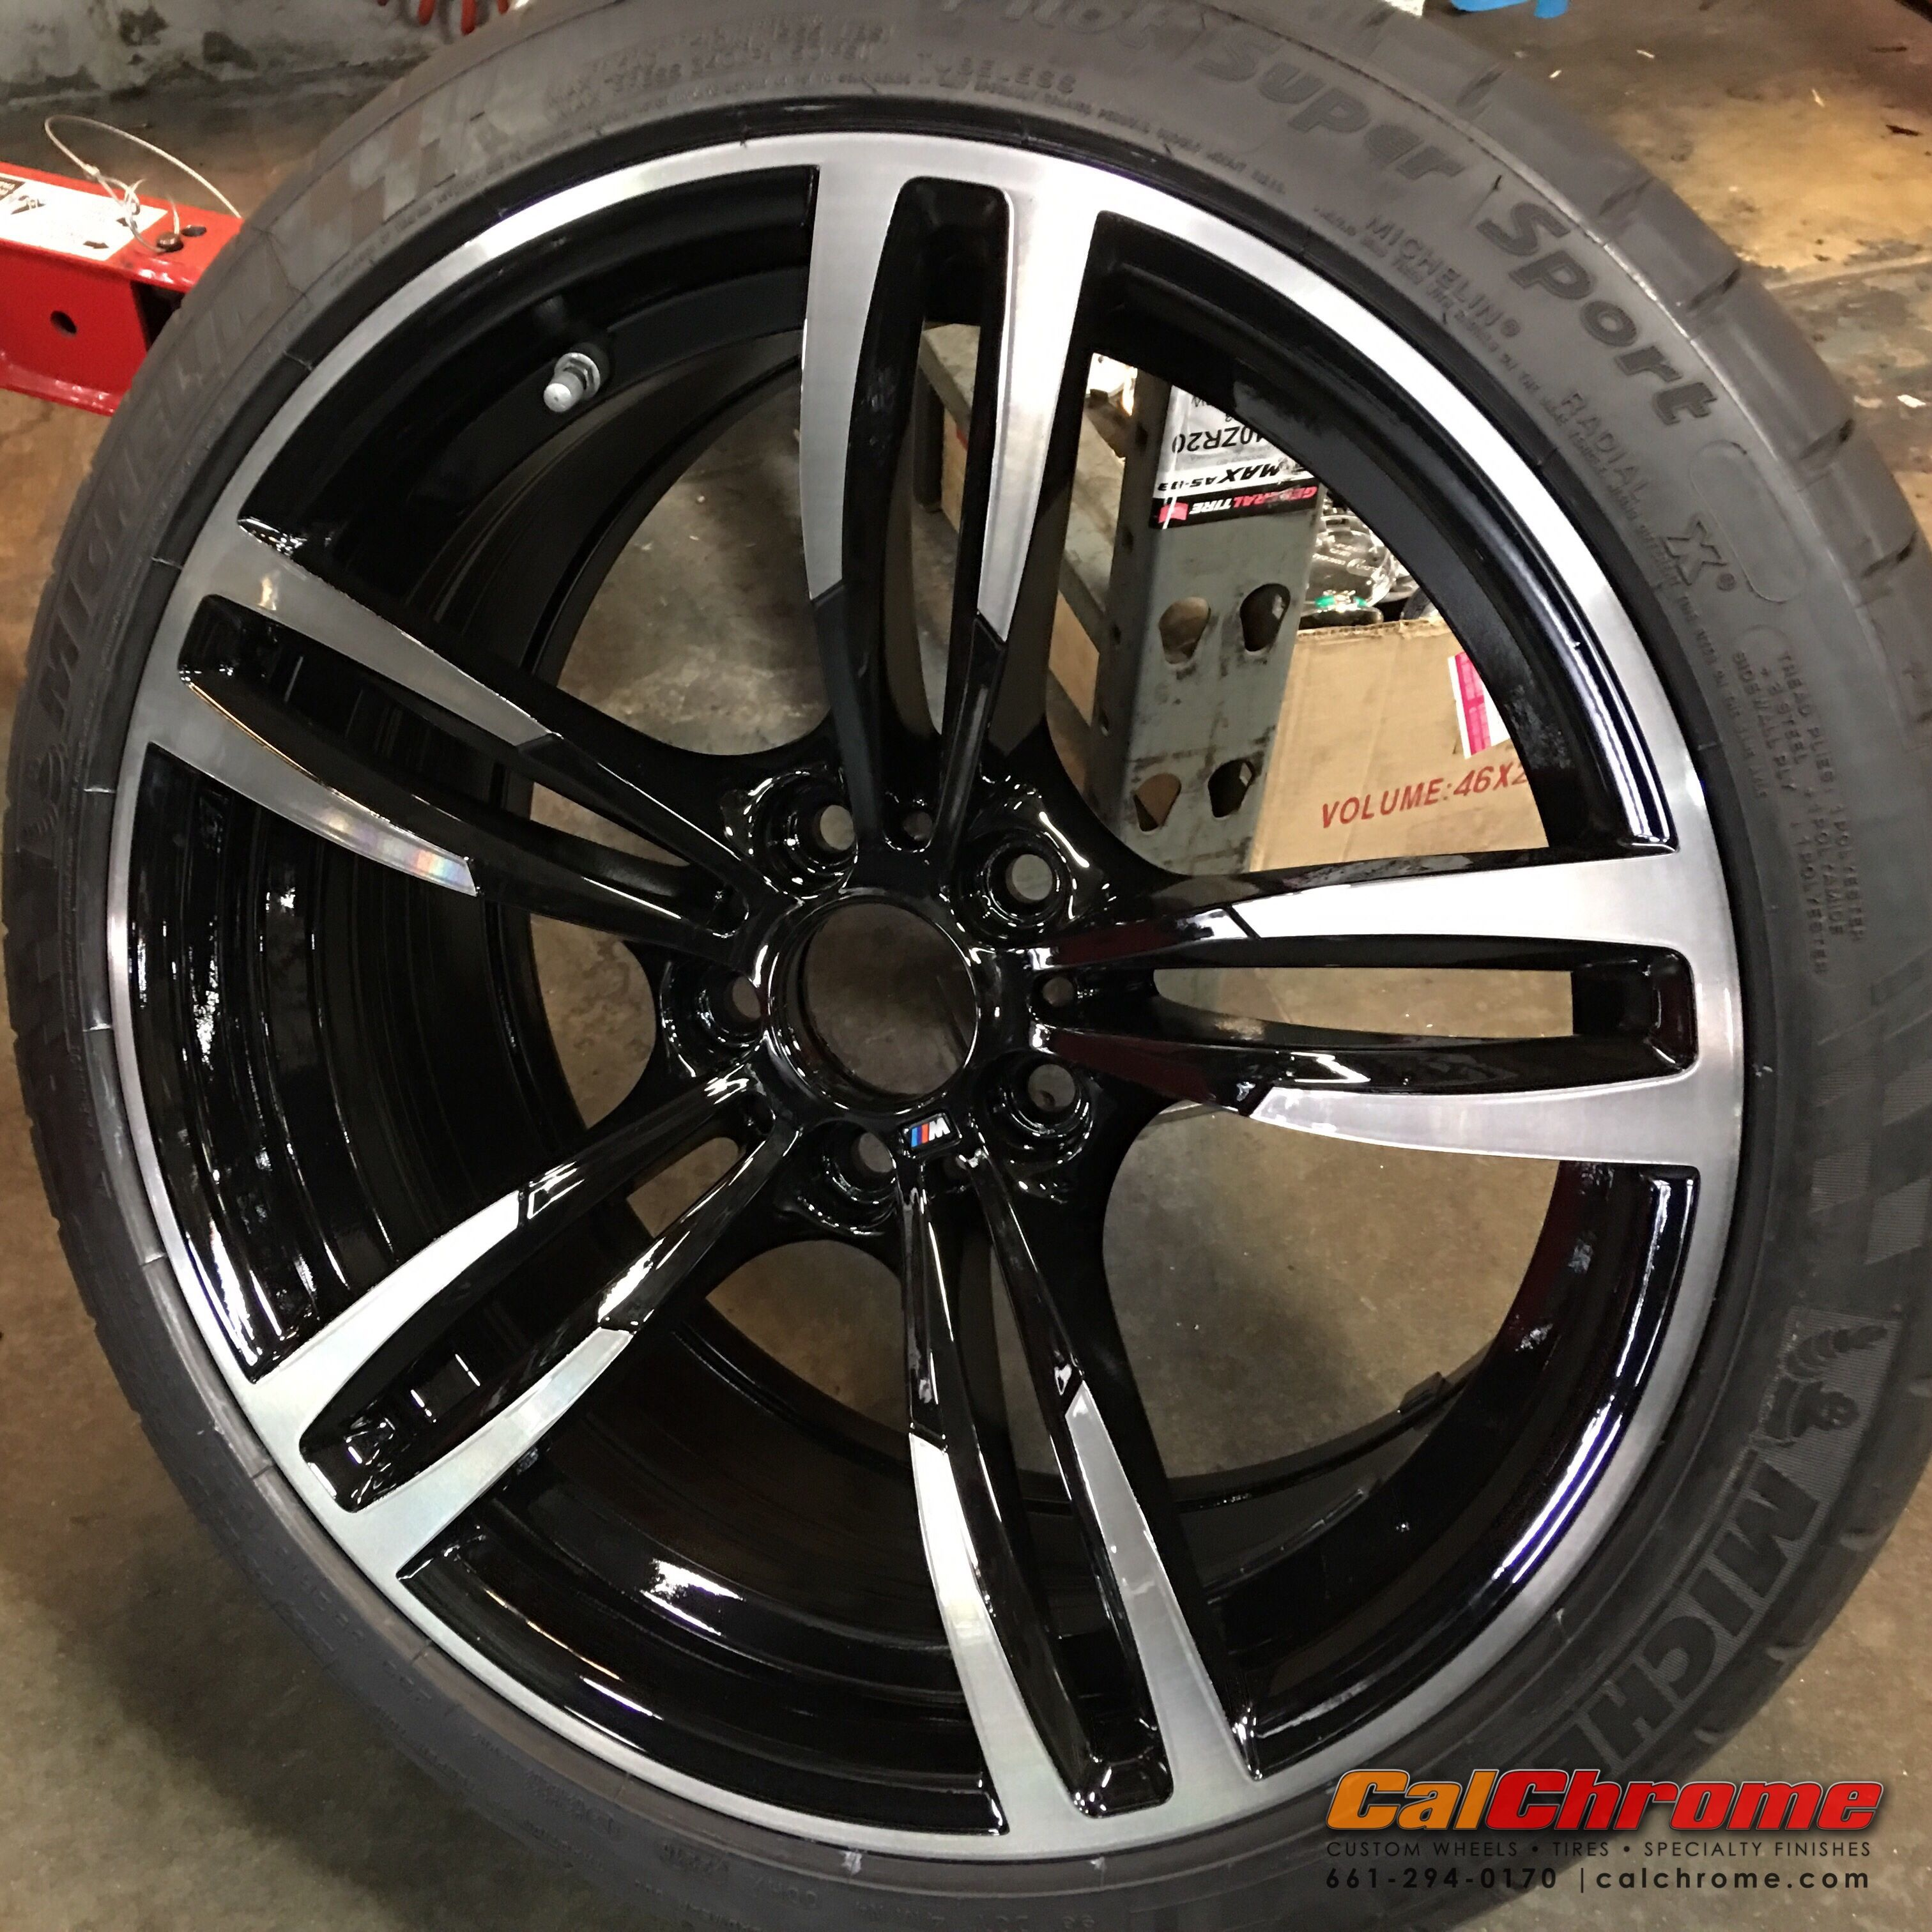 Bmw 4 Series 19 Style 437 Wheel Sprayed Gloss Black Machine Faced The Spokes And Color Matched The Factory Tinted Clear Bmw 4 Series Gloss Black Wheel